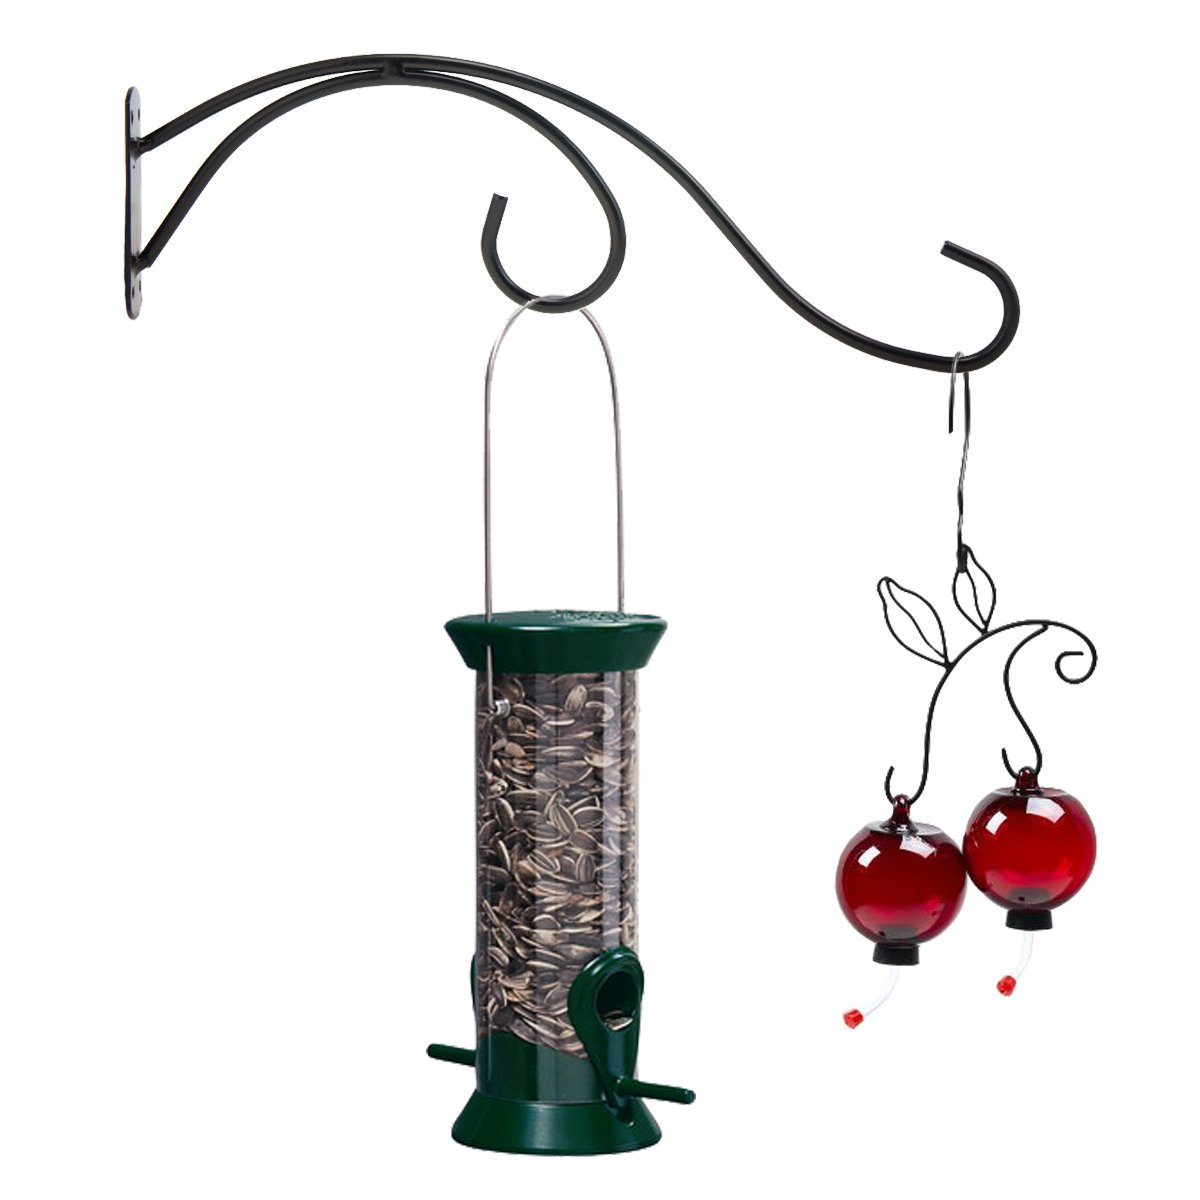 hook hanging arm long hanger decks for bird feeders rod hangers swing feeder plants install a how to or